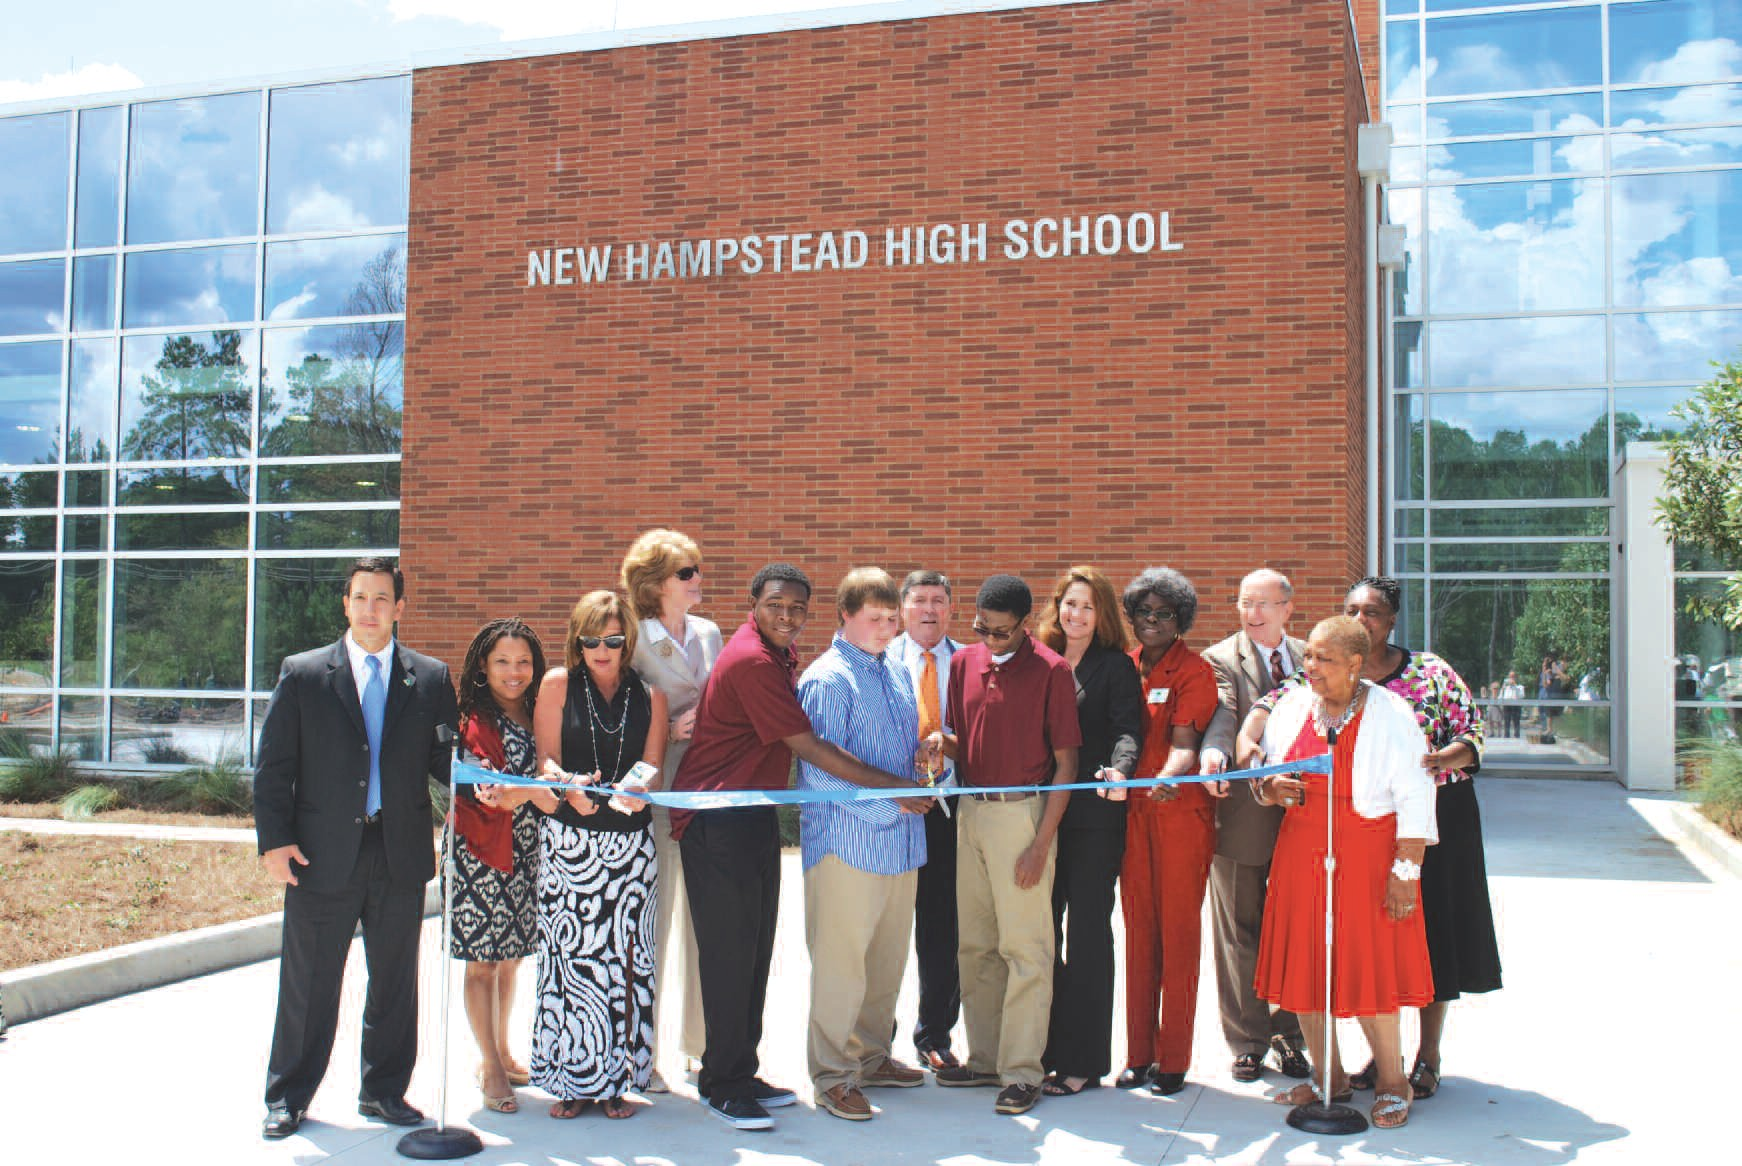 Members of the public, SCCPSS Administration, and members of the Savannah- Chatham County Board of Public Education participate in ribbon cutting